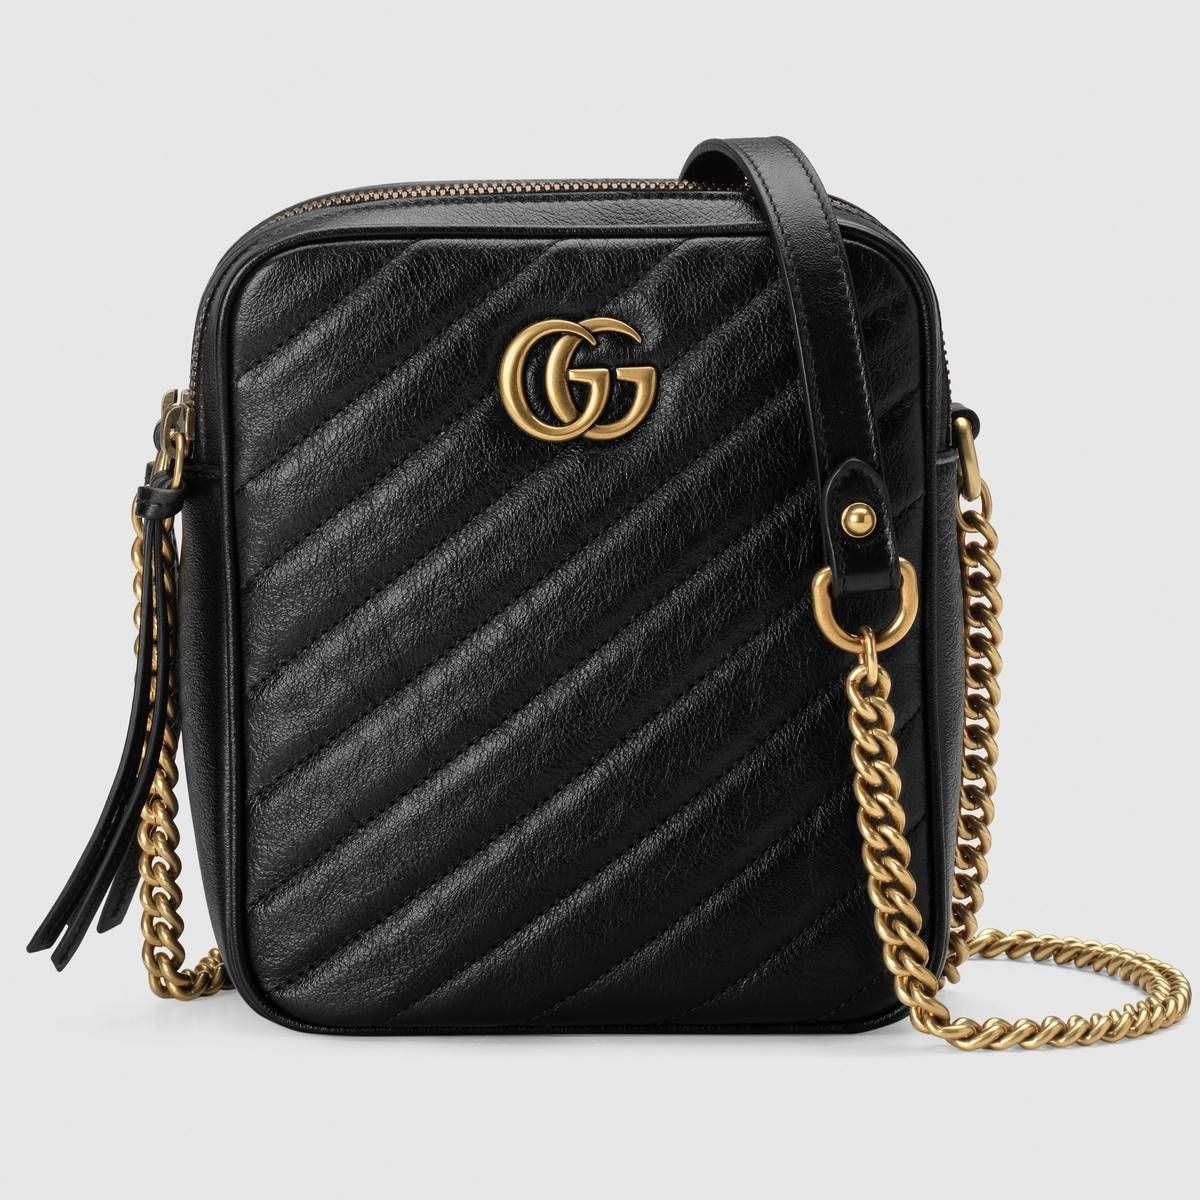 0d409d391 Shop the GG Marmont mini shoulder bag by Gucci. A new introduction to the GG